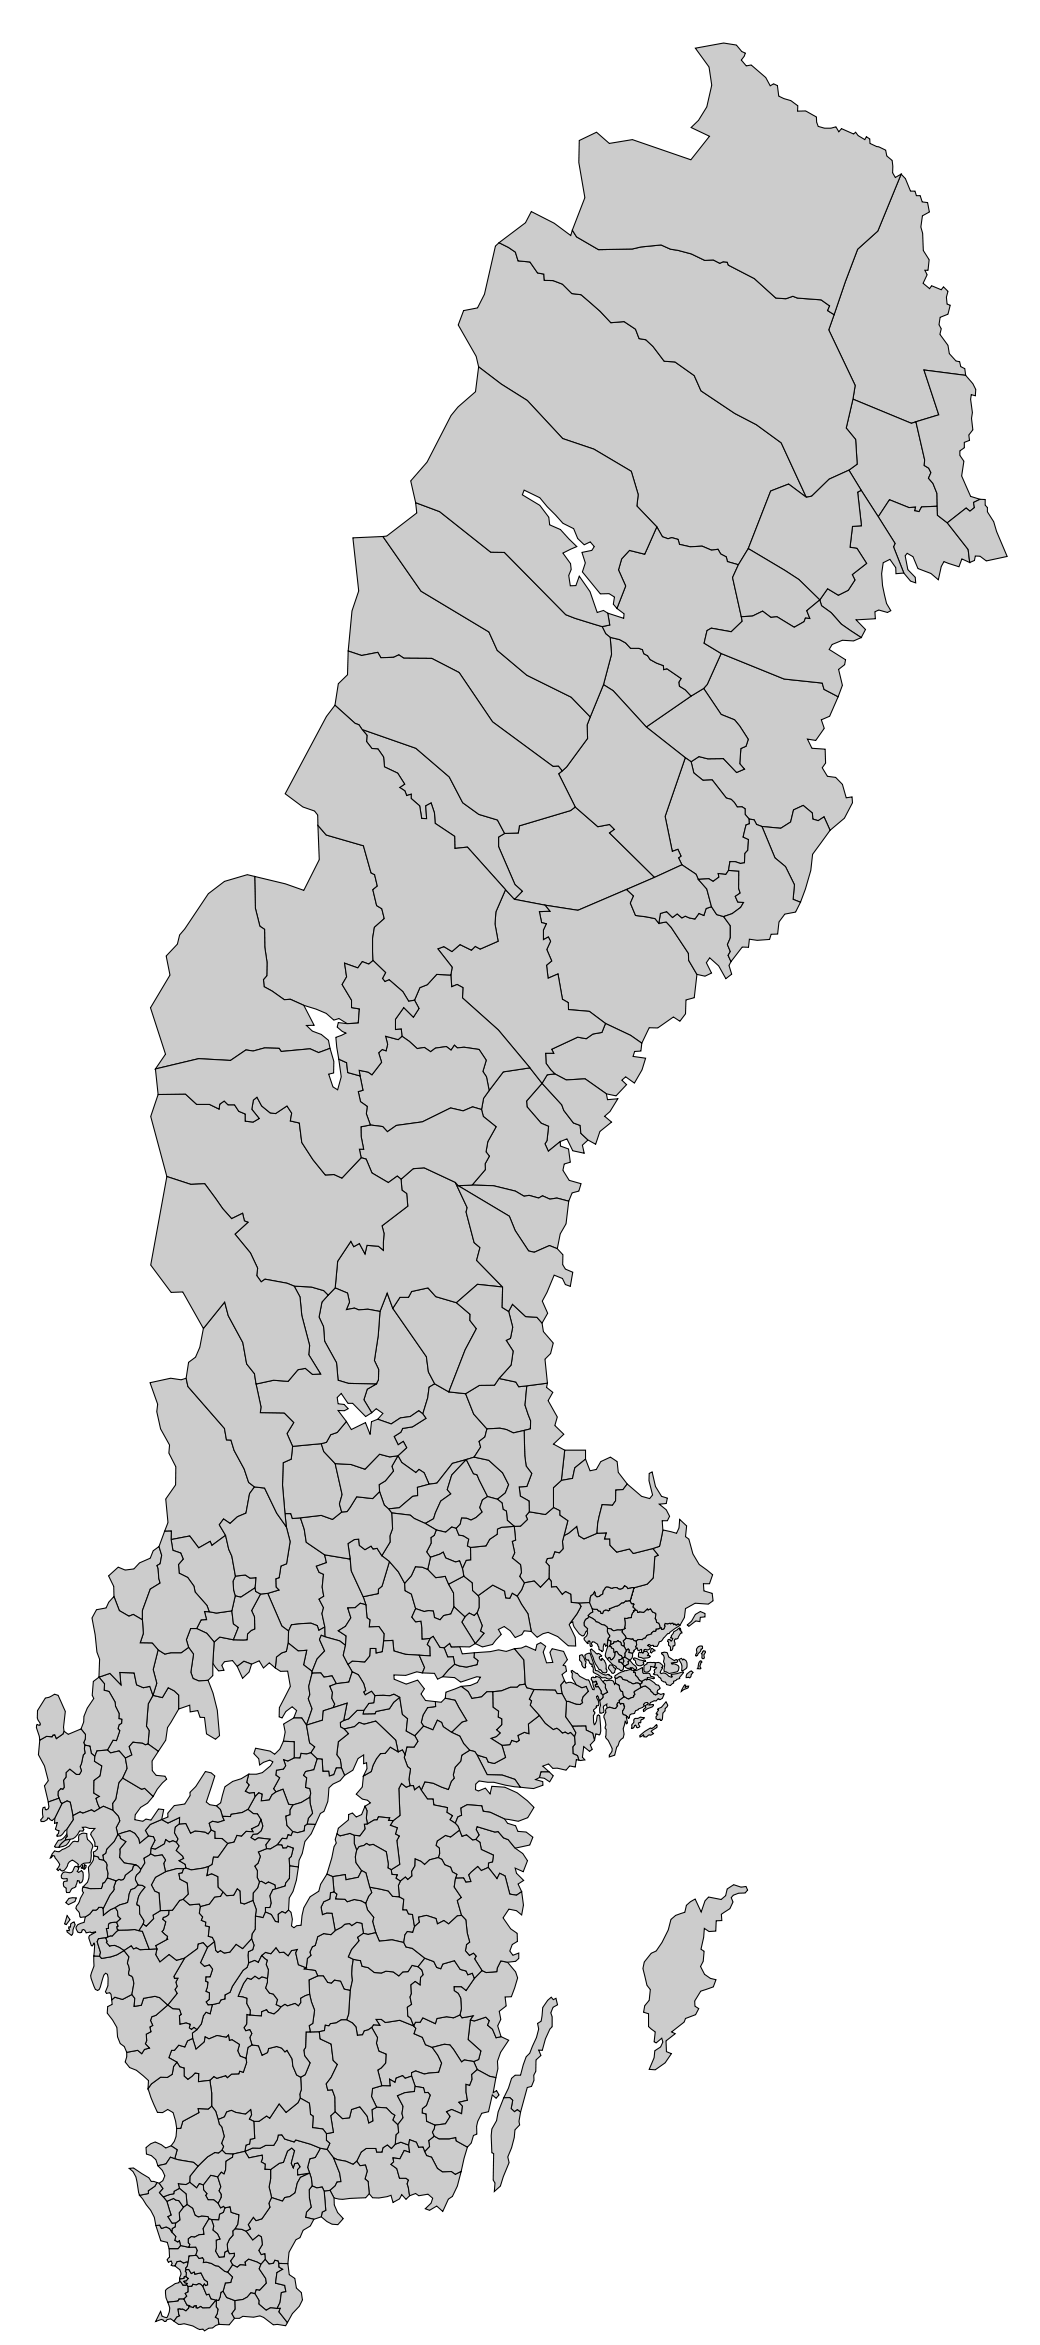 Sweden Blank Map With Municipal Borders Mapsofnet - Sweden map blank